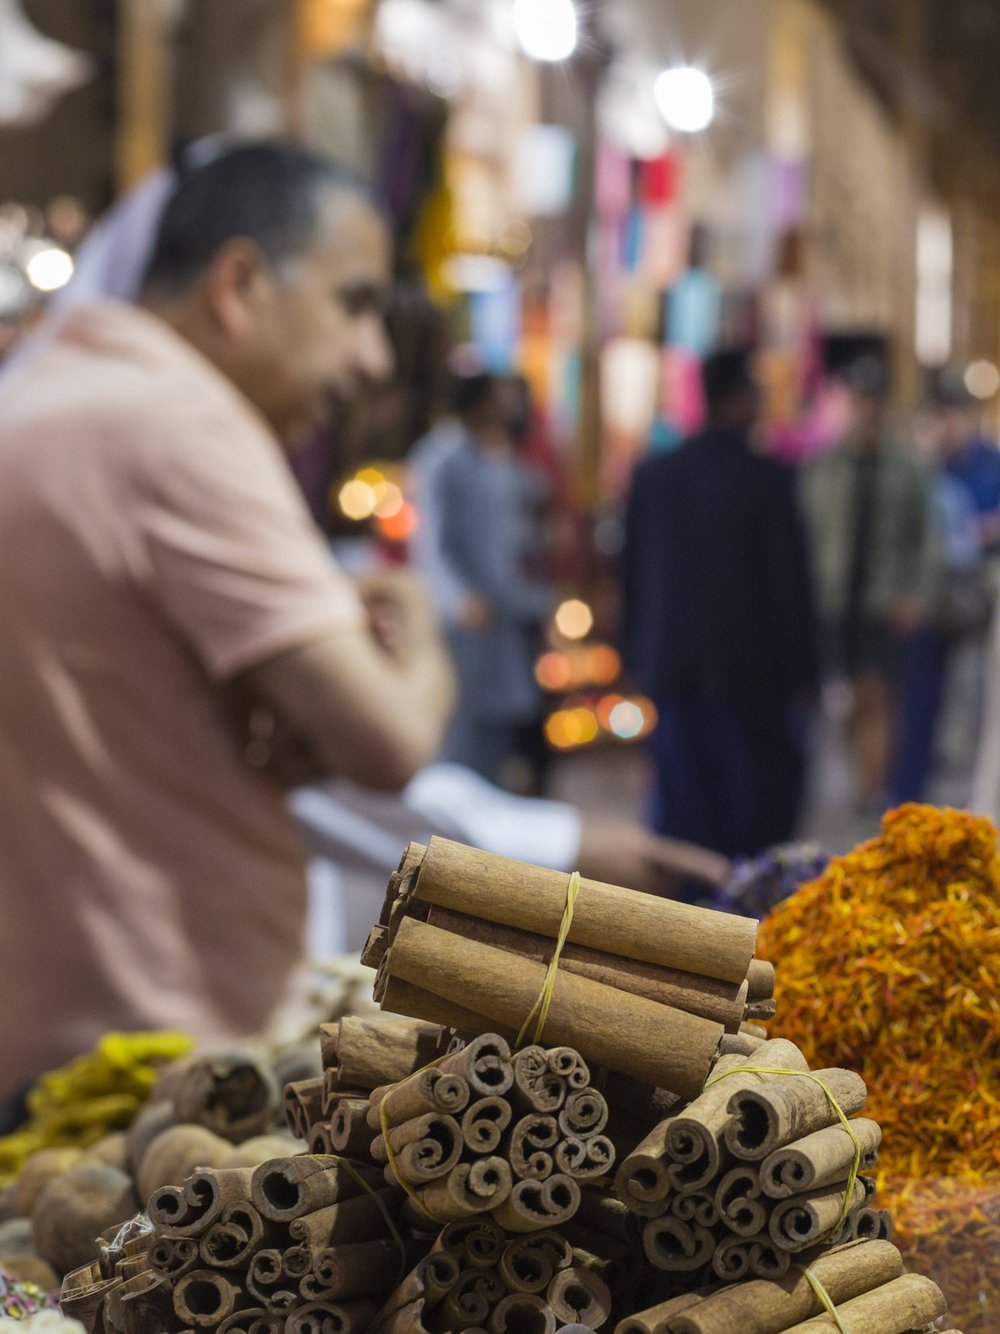 Dubai Souks - Gold, hand-woven fabrics, spices, fragrances and more. You'll find it all at Dubai's Arabian markets.